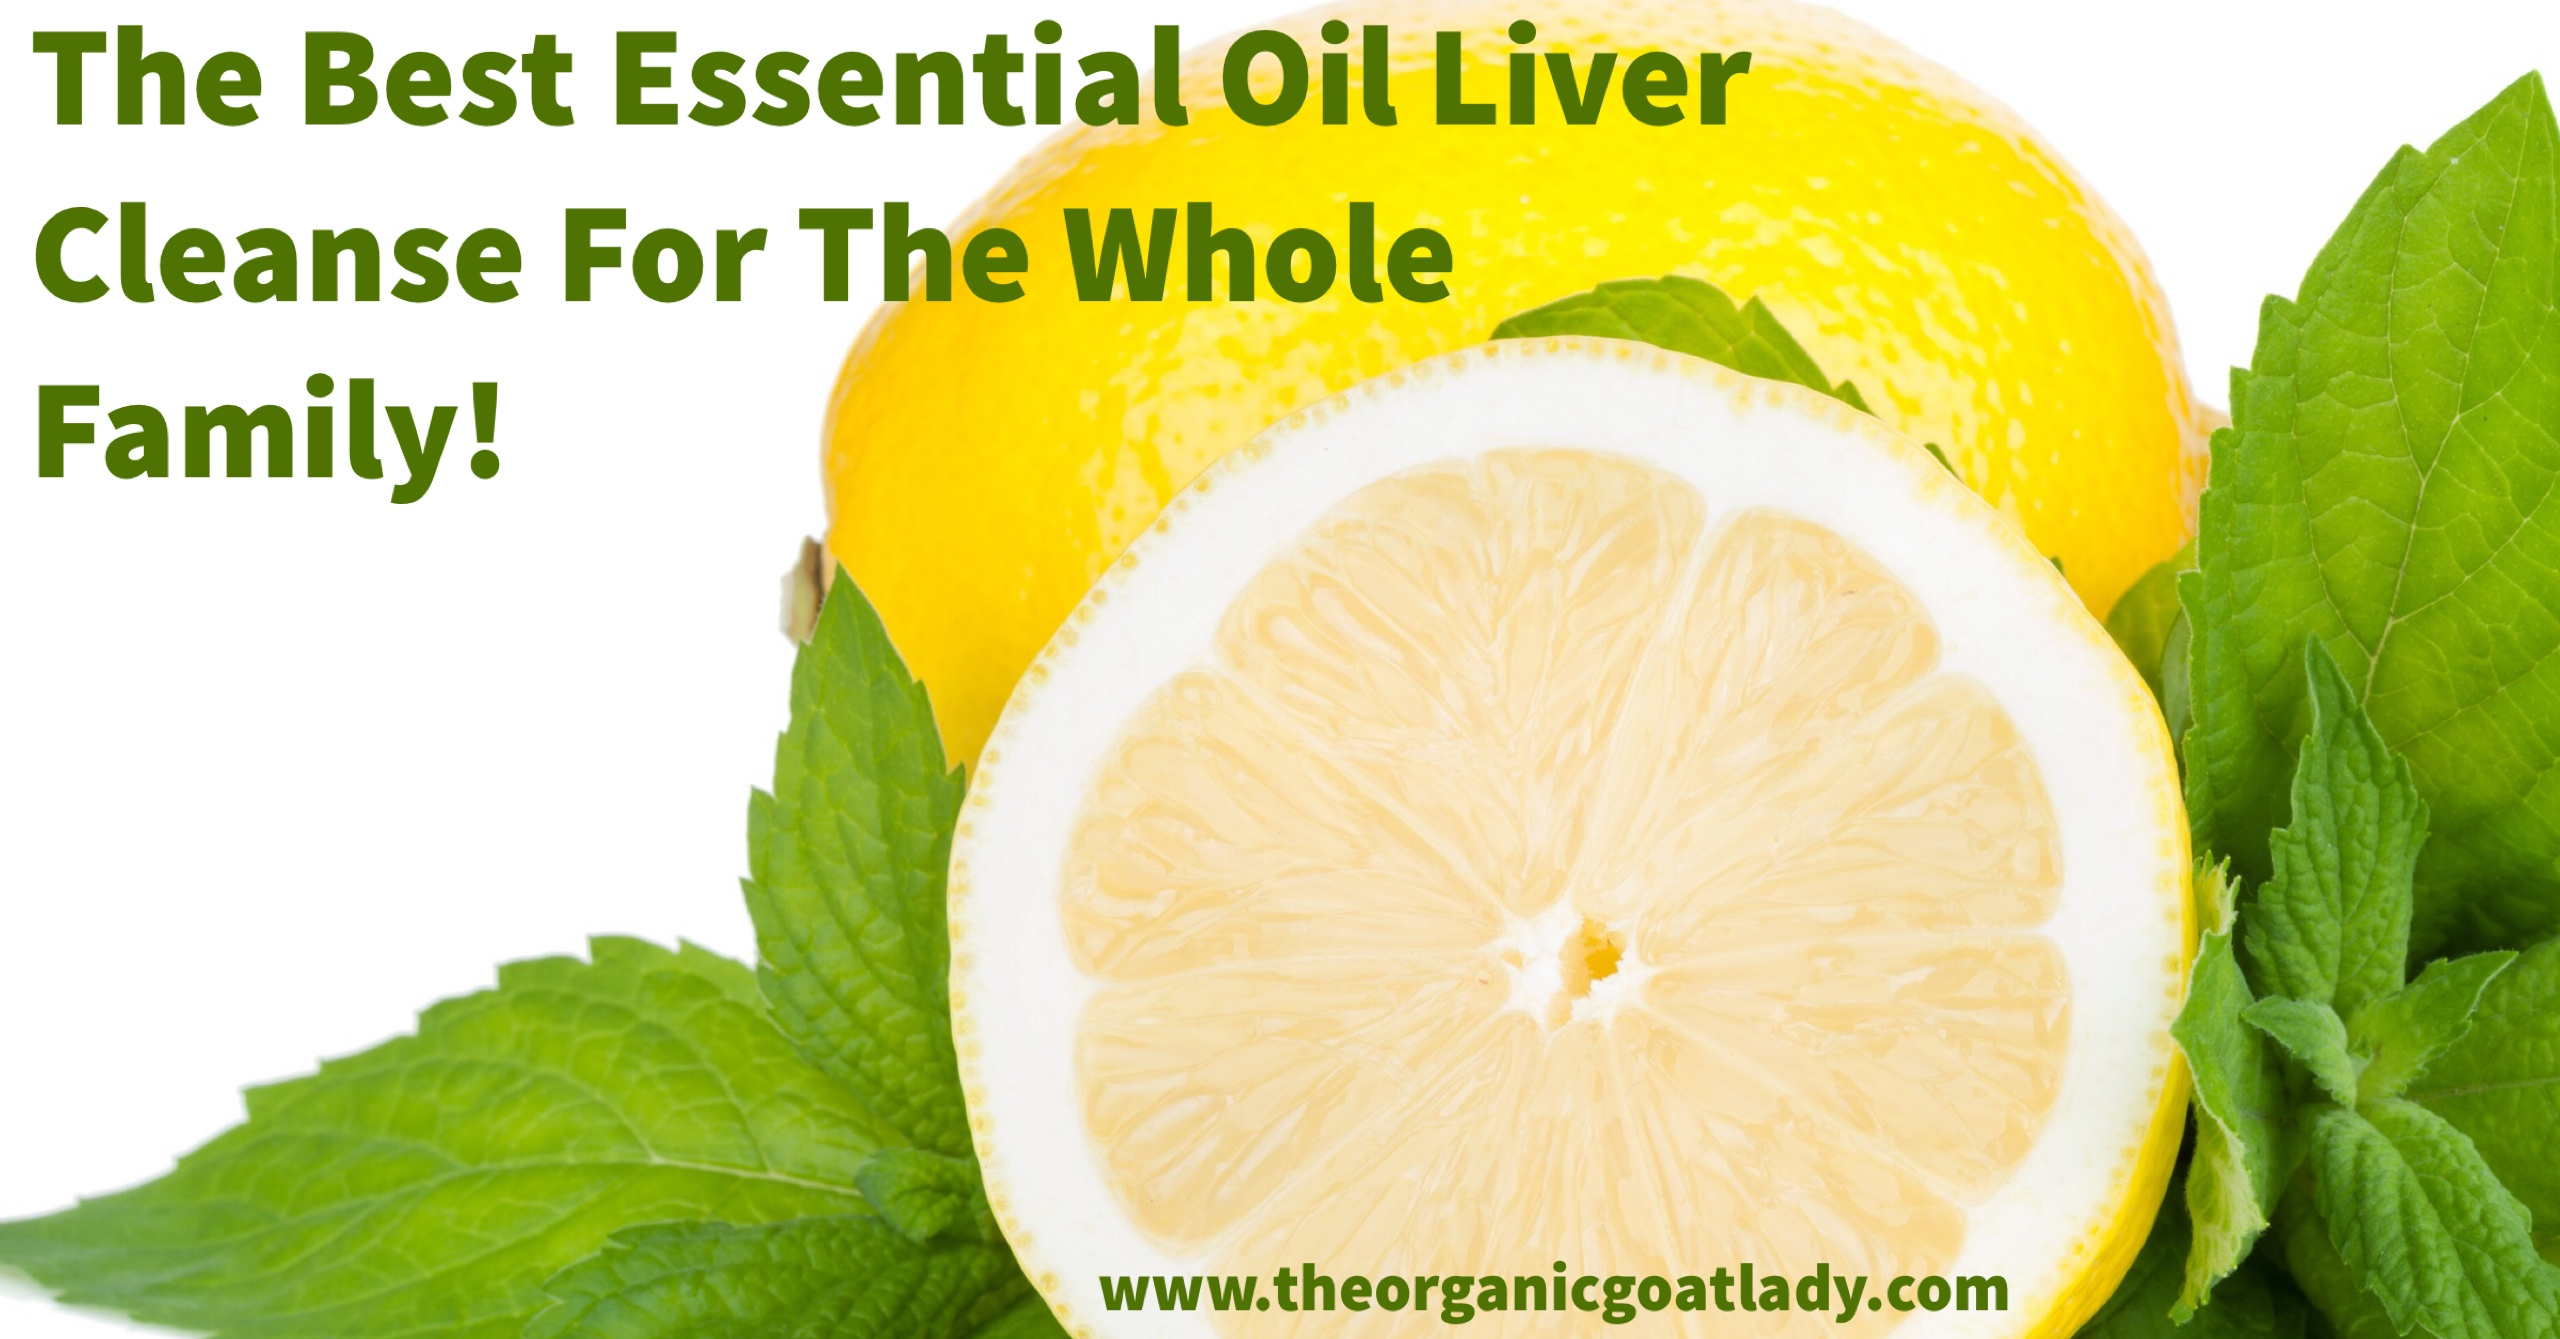 The Best Essential Oil Liver a Cleanse For The Whole Family